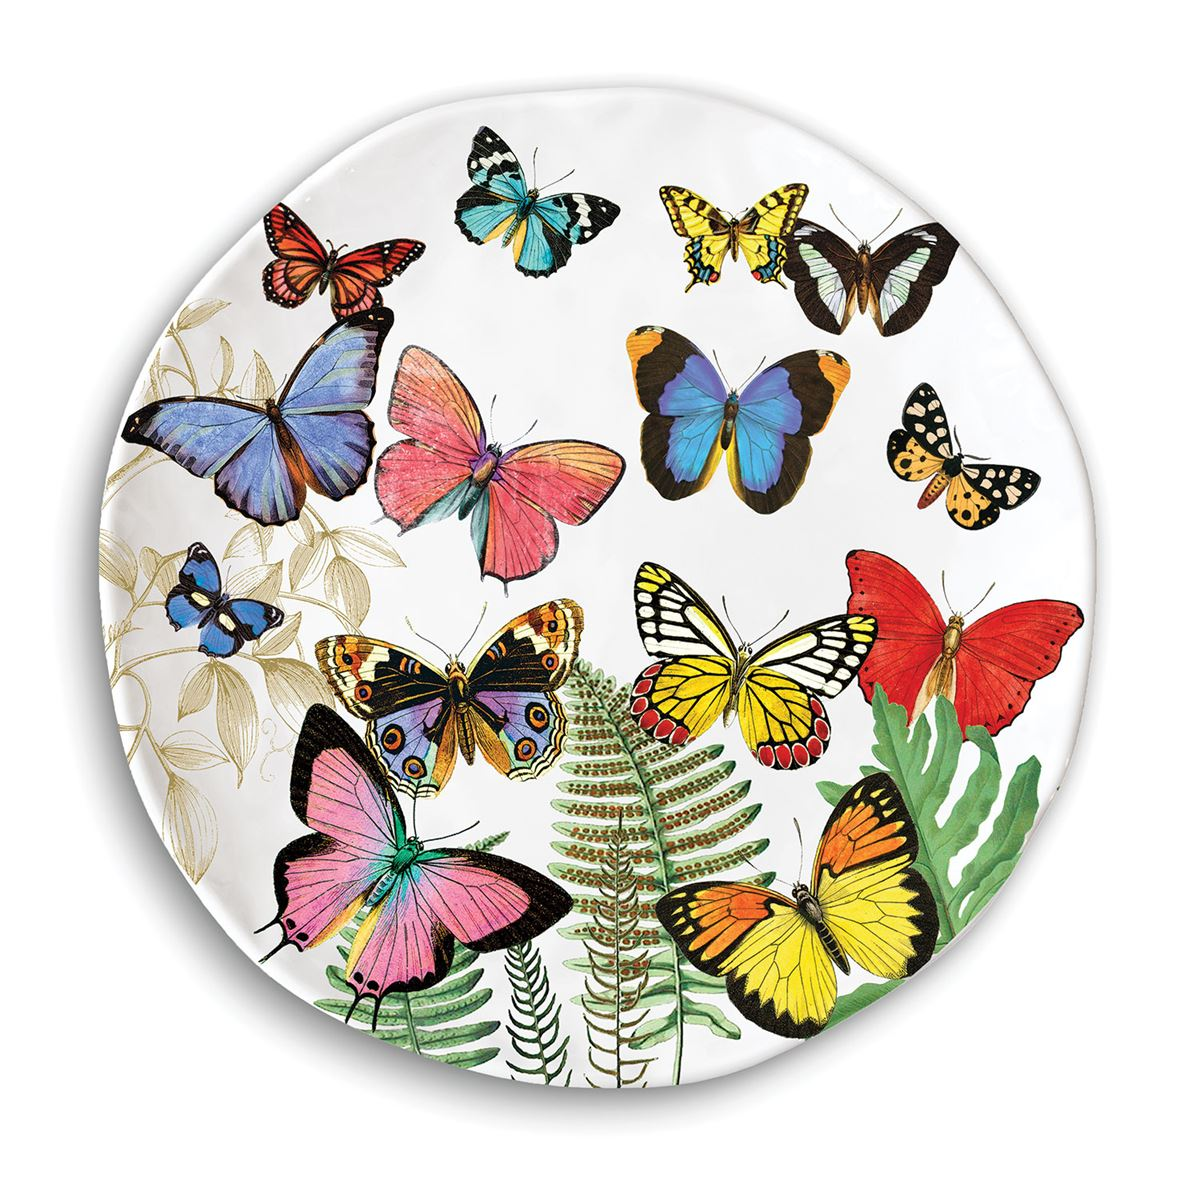 Papillon Melamine Casual Dinner Plate ...  sc 1 st  Ferris Wheels and Carousels & Michel Design Works Melamine Casual Dinner Plate - Papillon